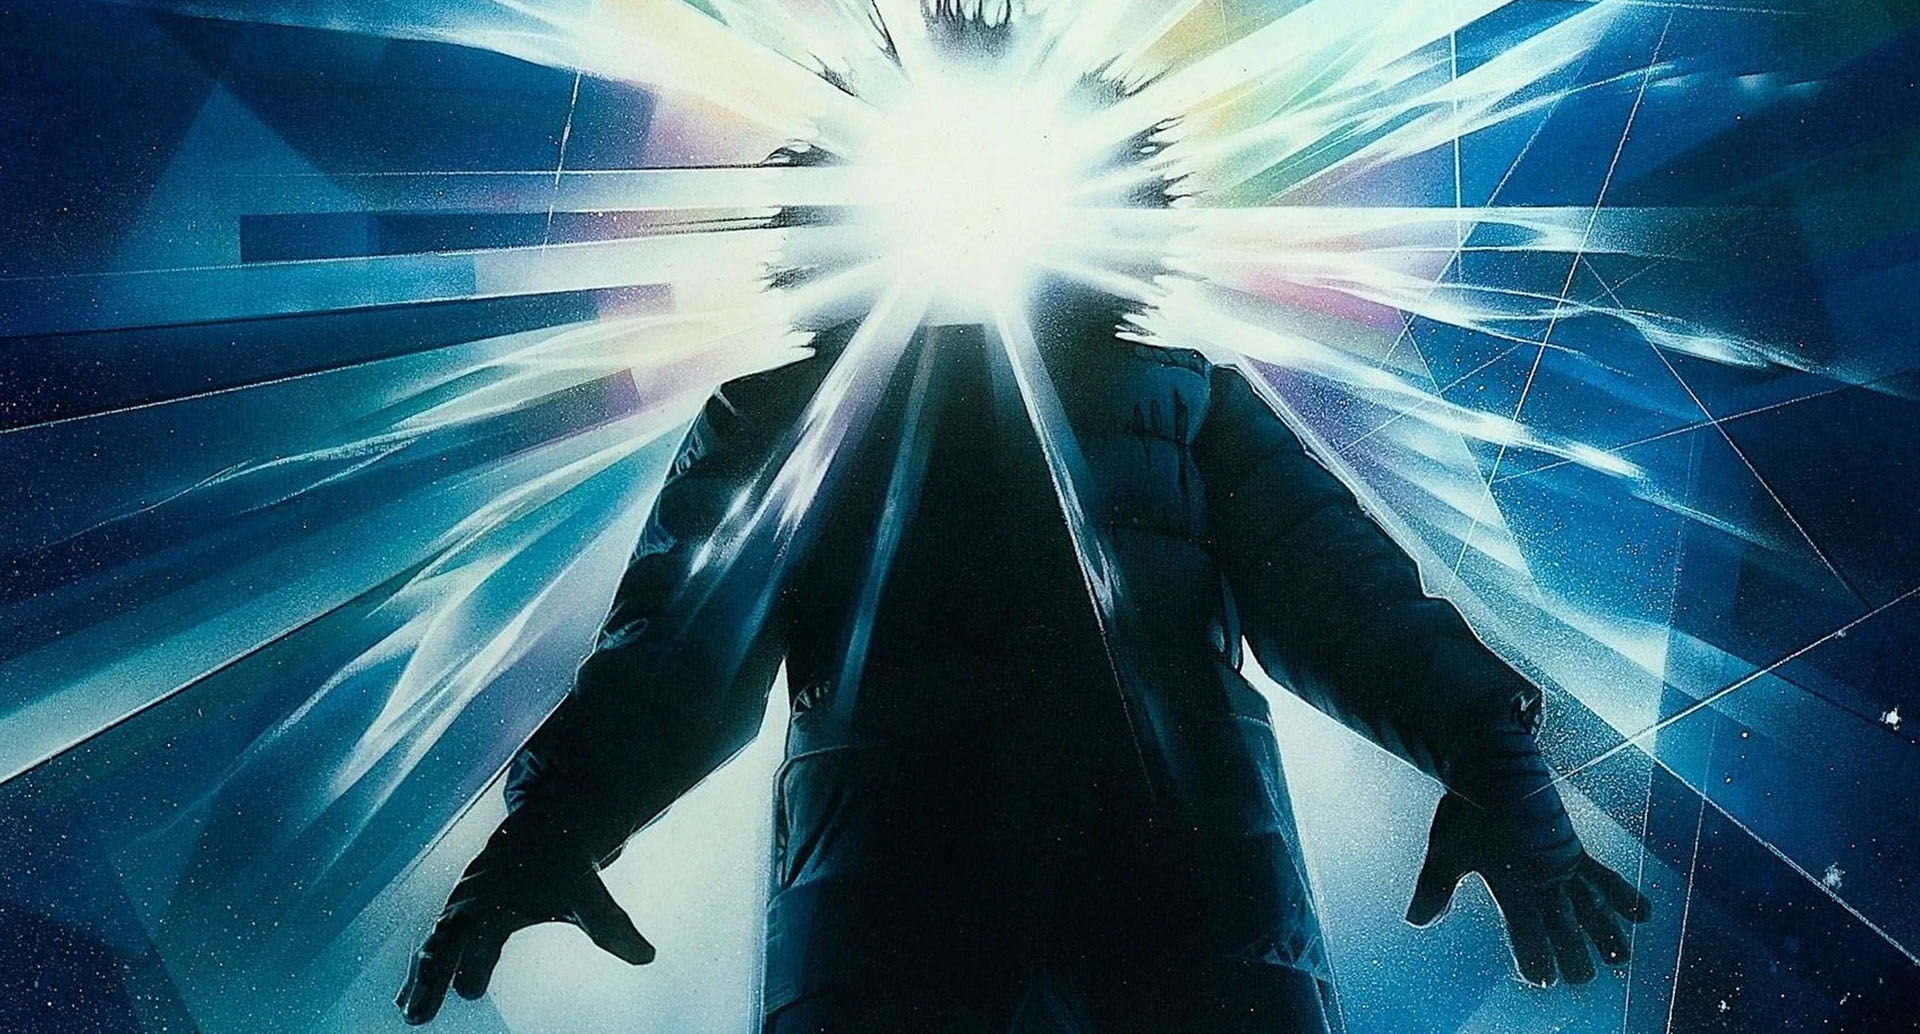 RIP: The Thing Producer David Foster